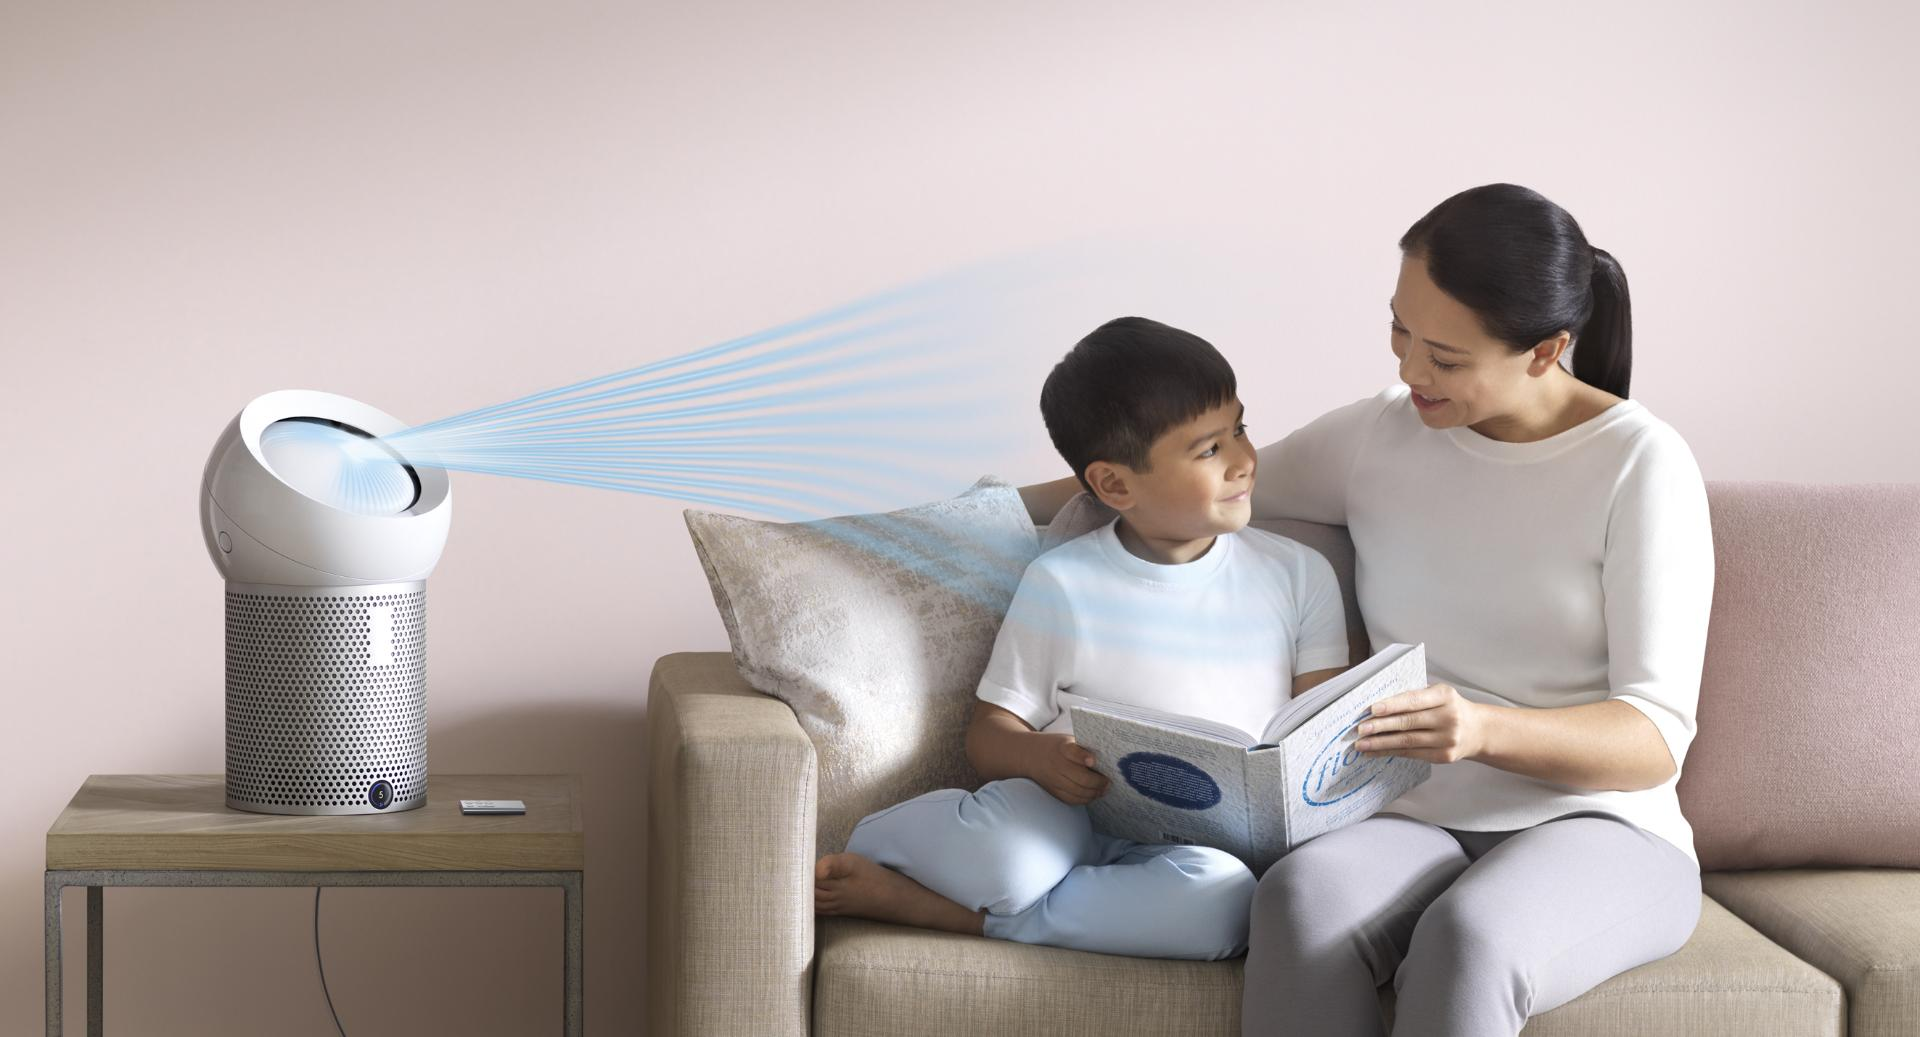 A woman reads to her son, next to the Dyson Pure Cool Me™ personal purifying fan